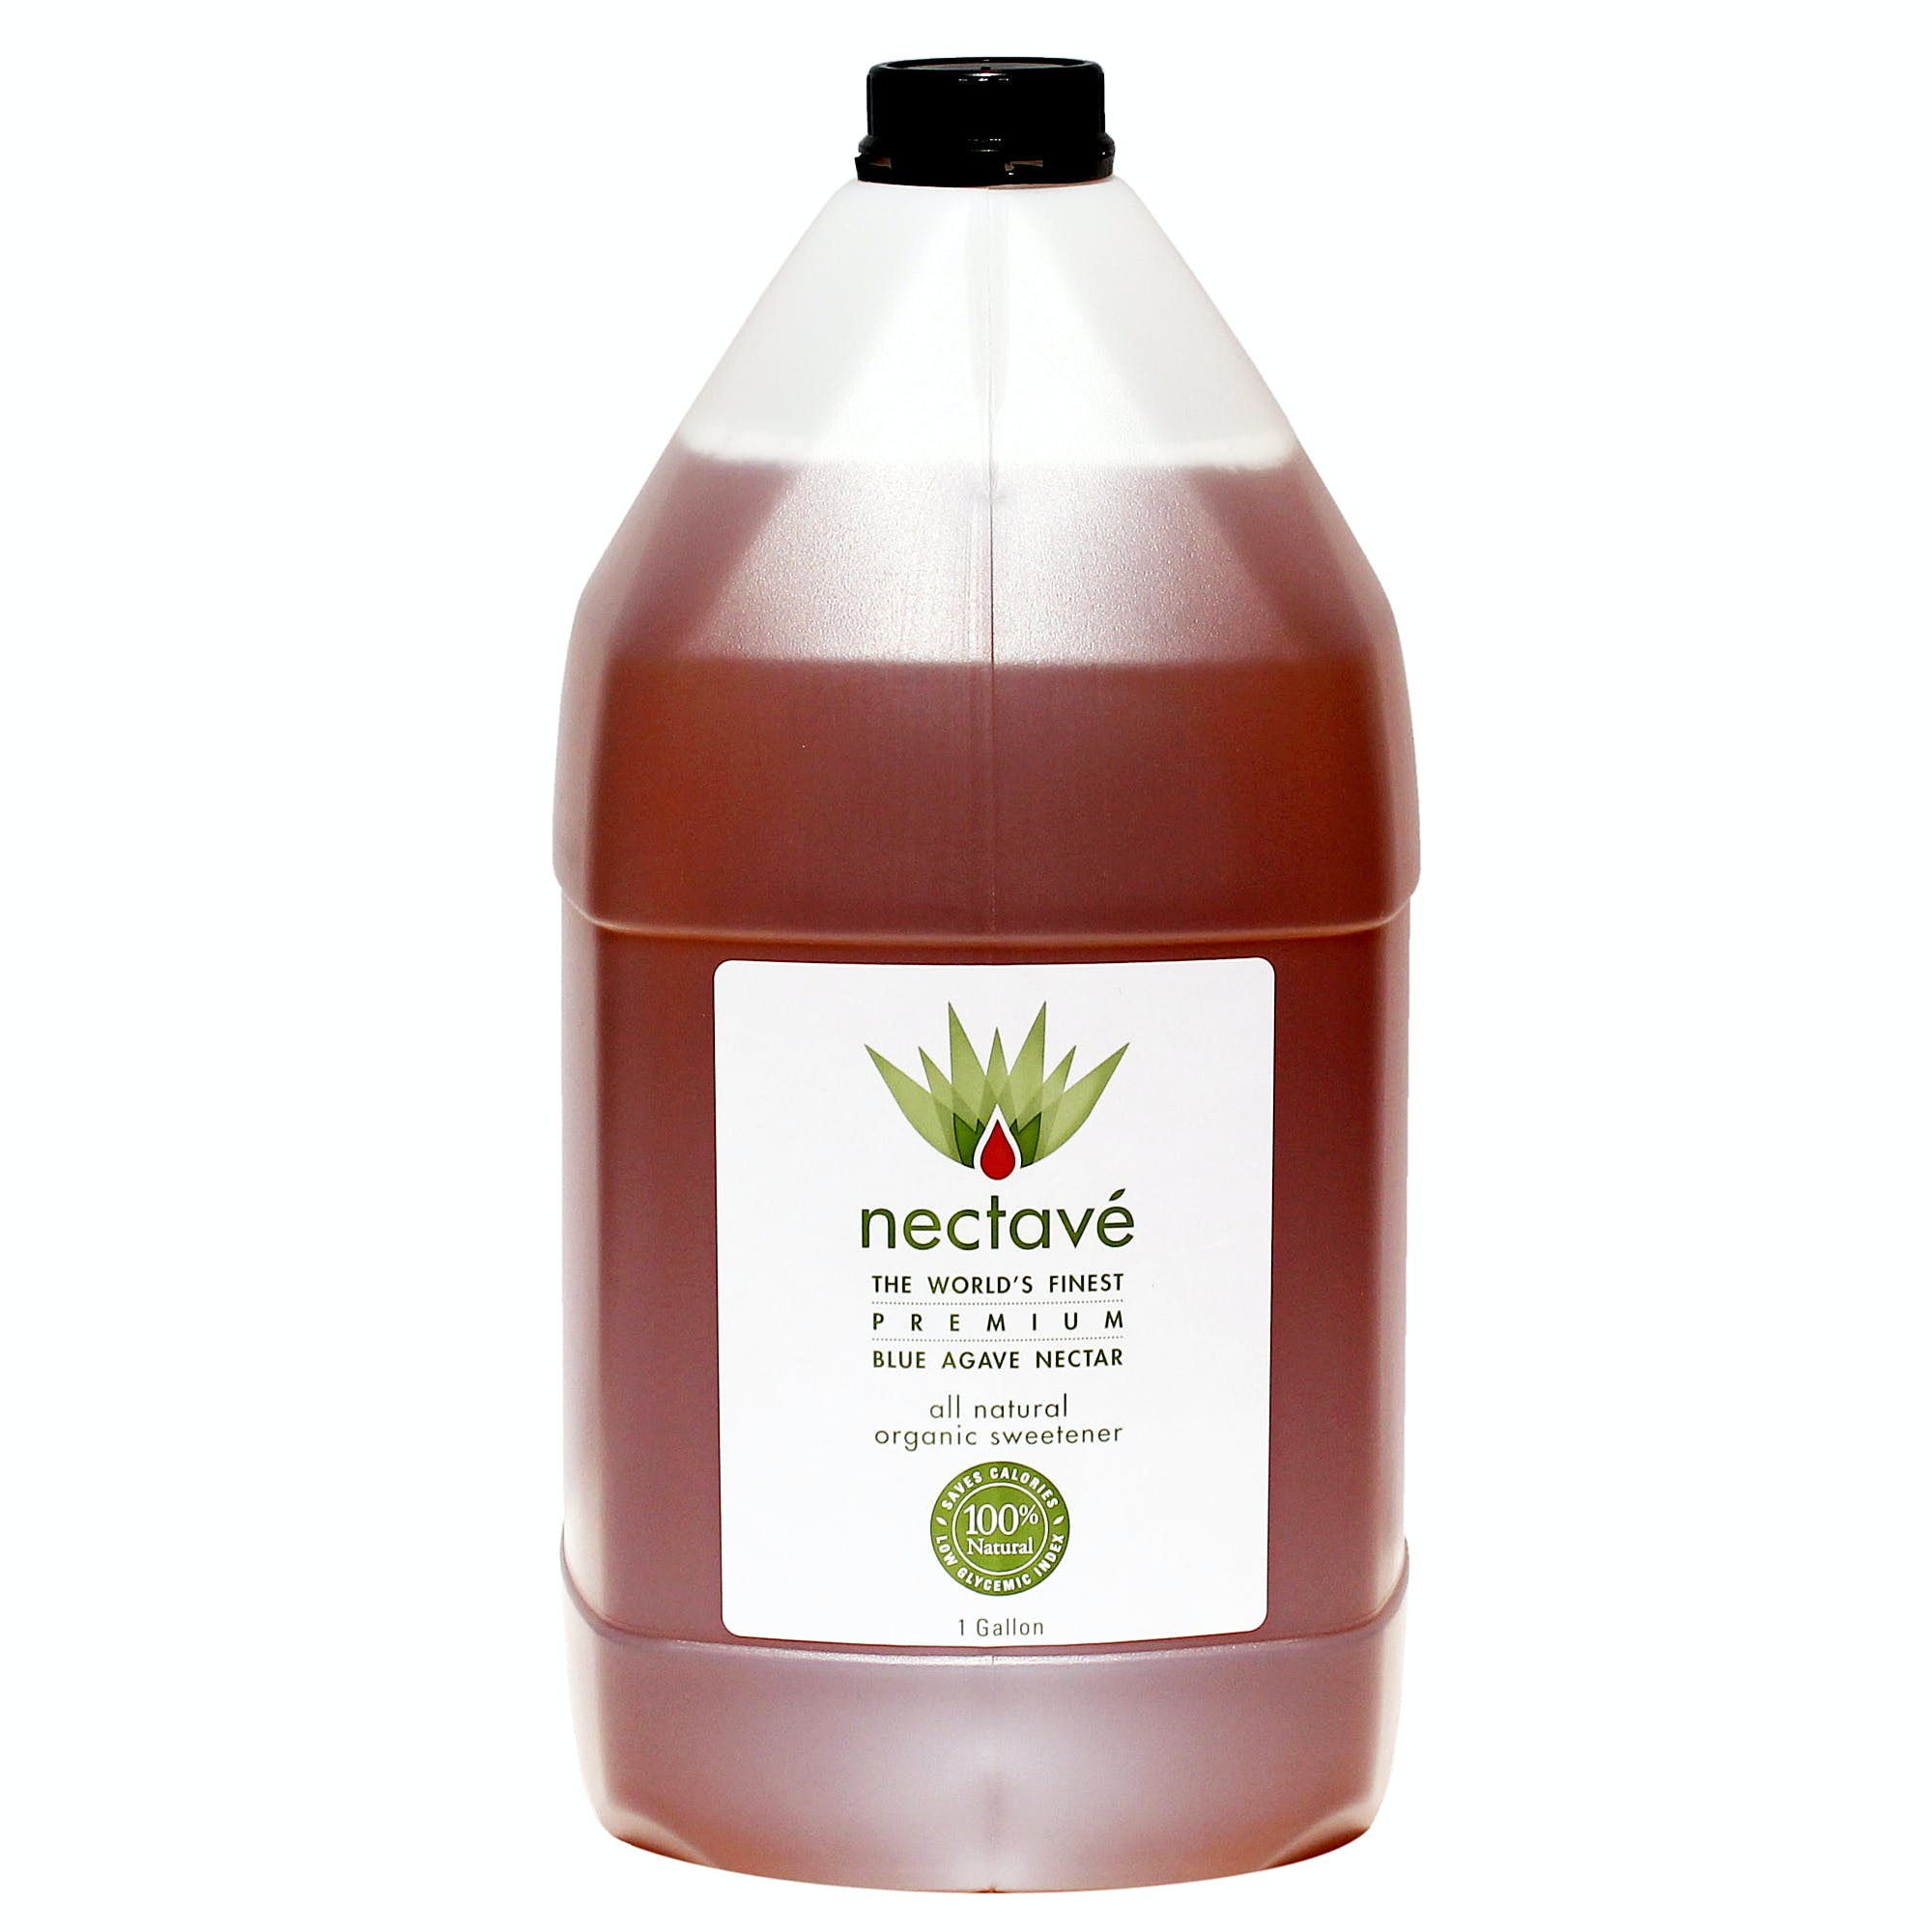 Organic Agave Nectar for Food Service Agave sweetener sold by M5 Corporation